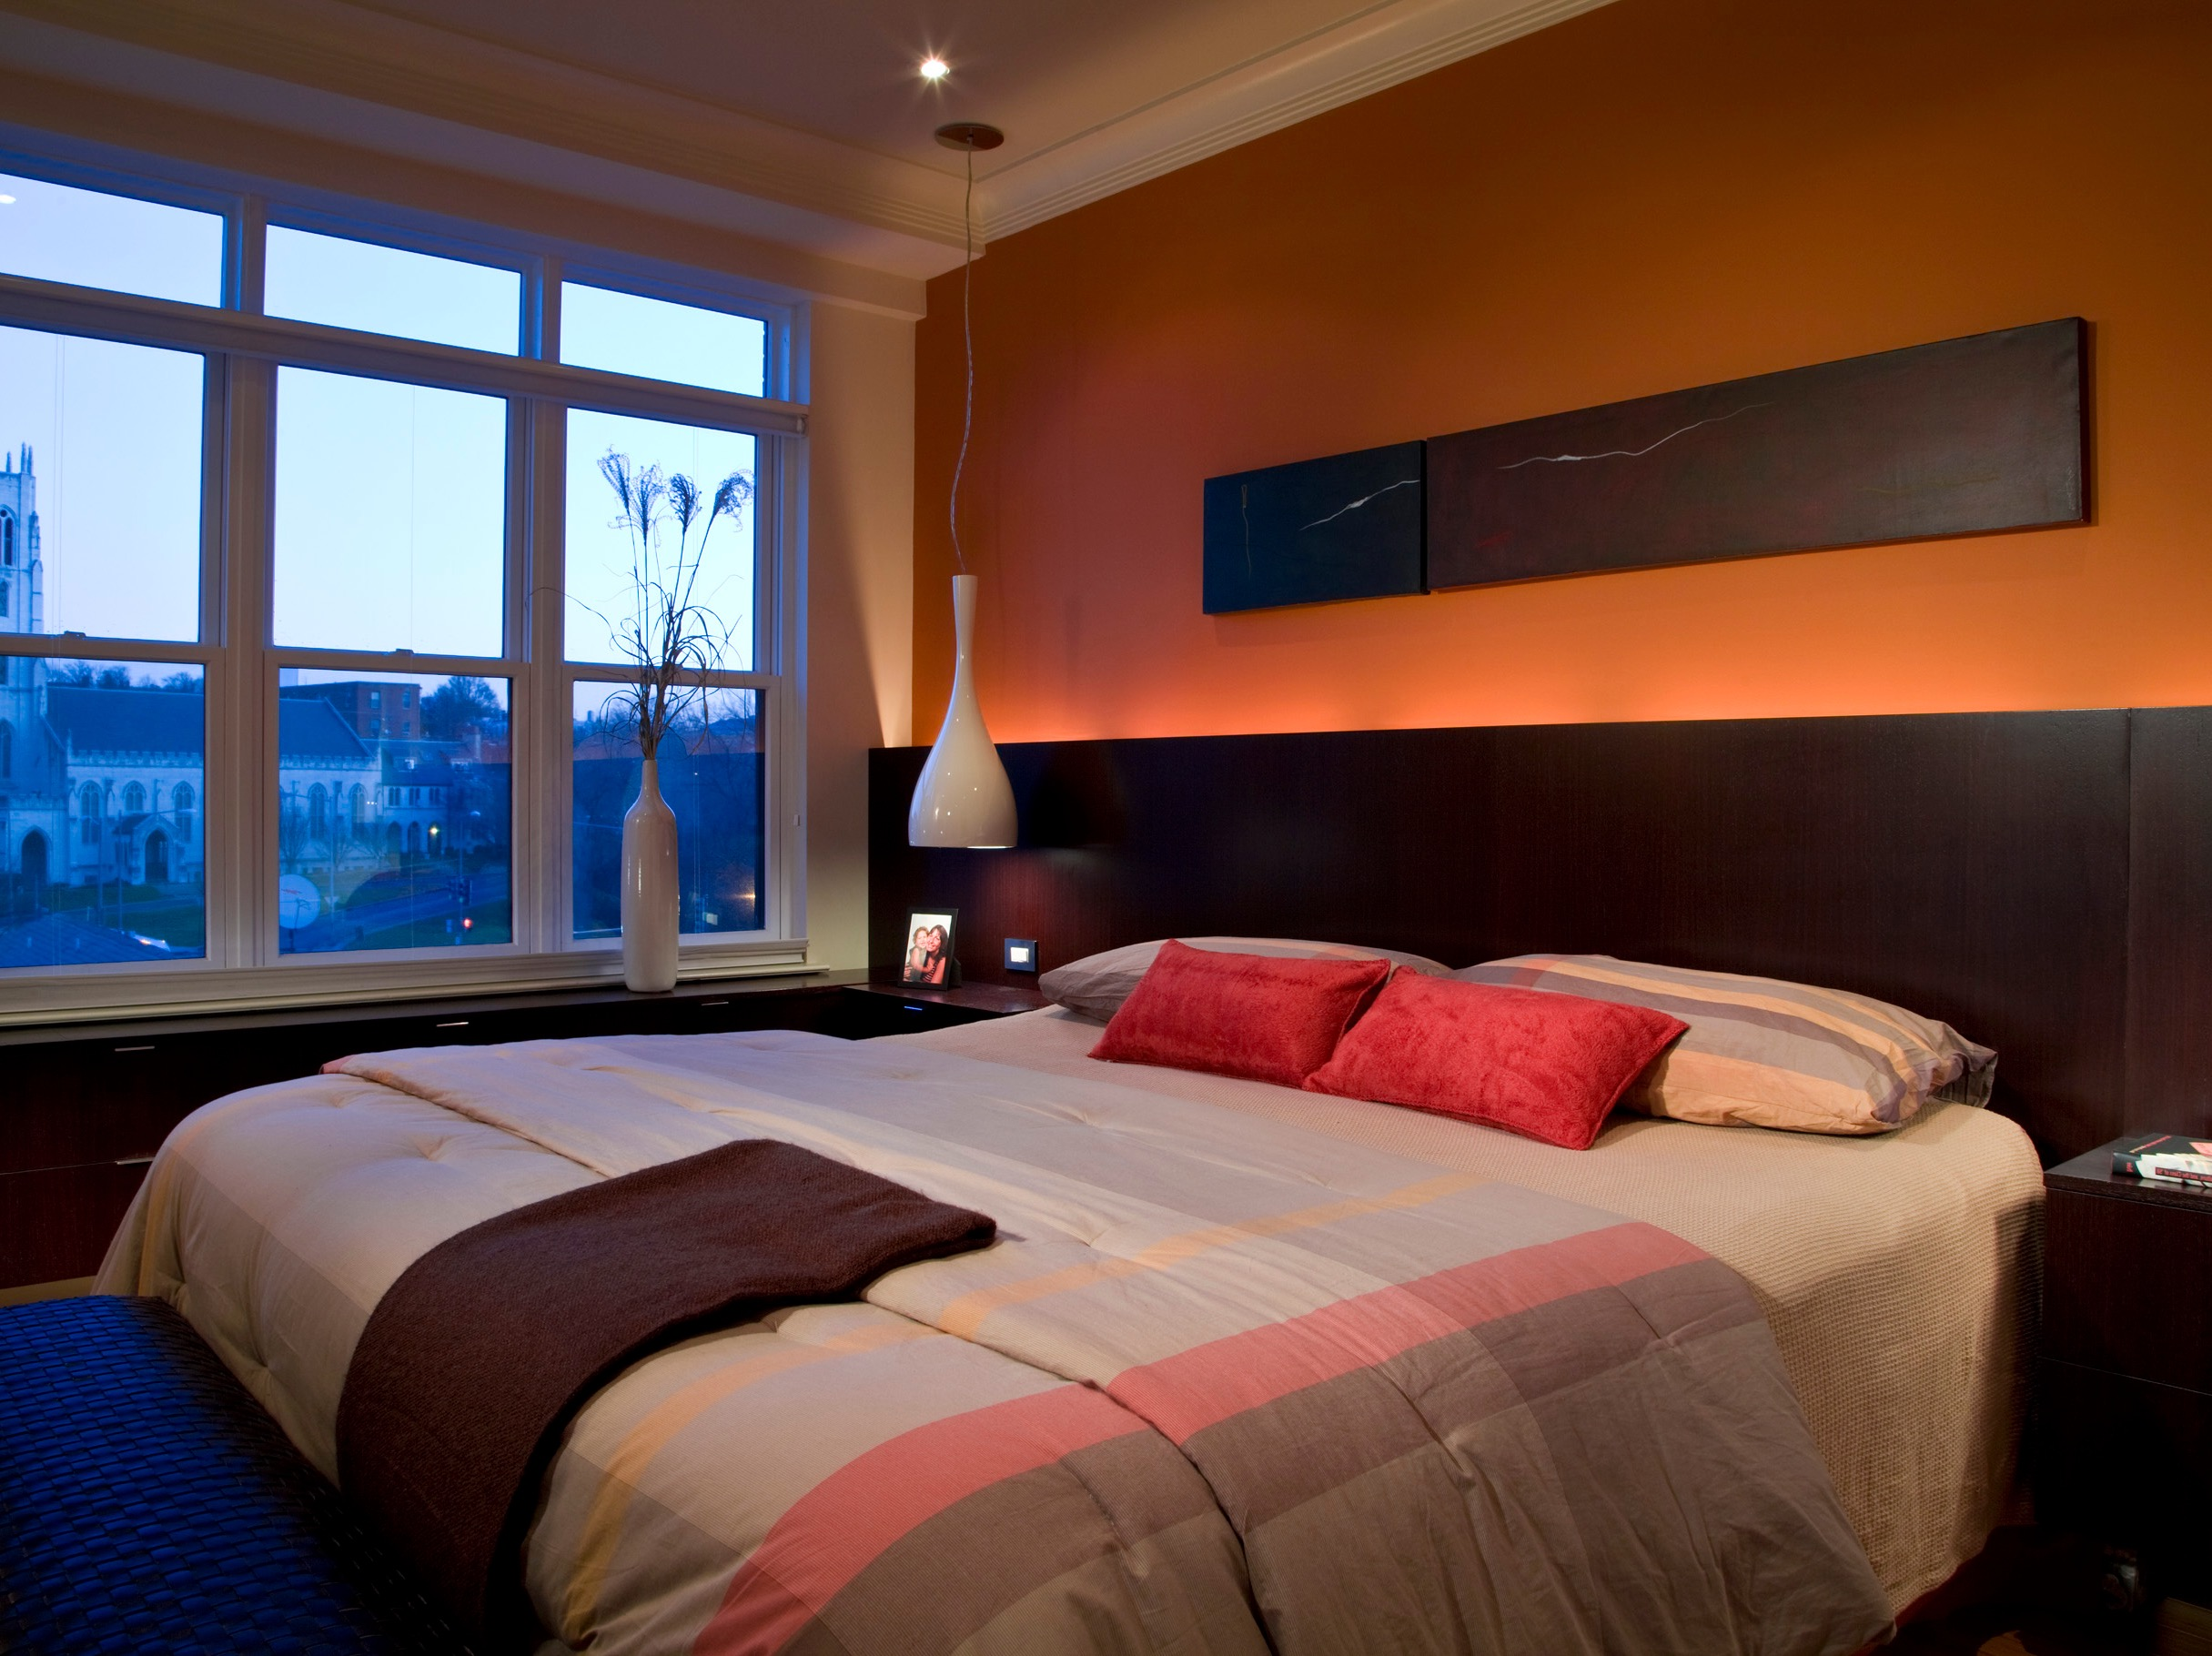 masculine orange bedroom color with dramatic lighting image 11 of 22